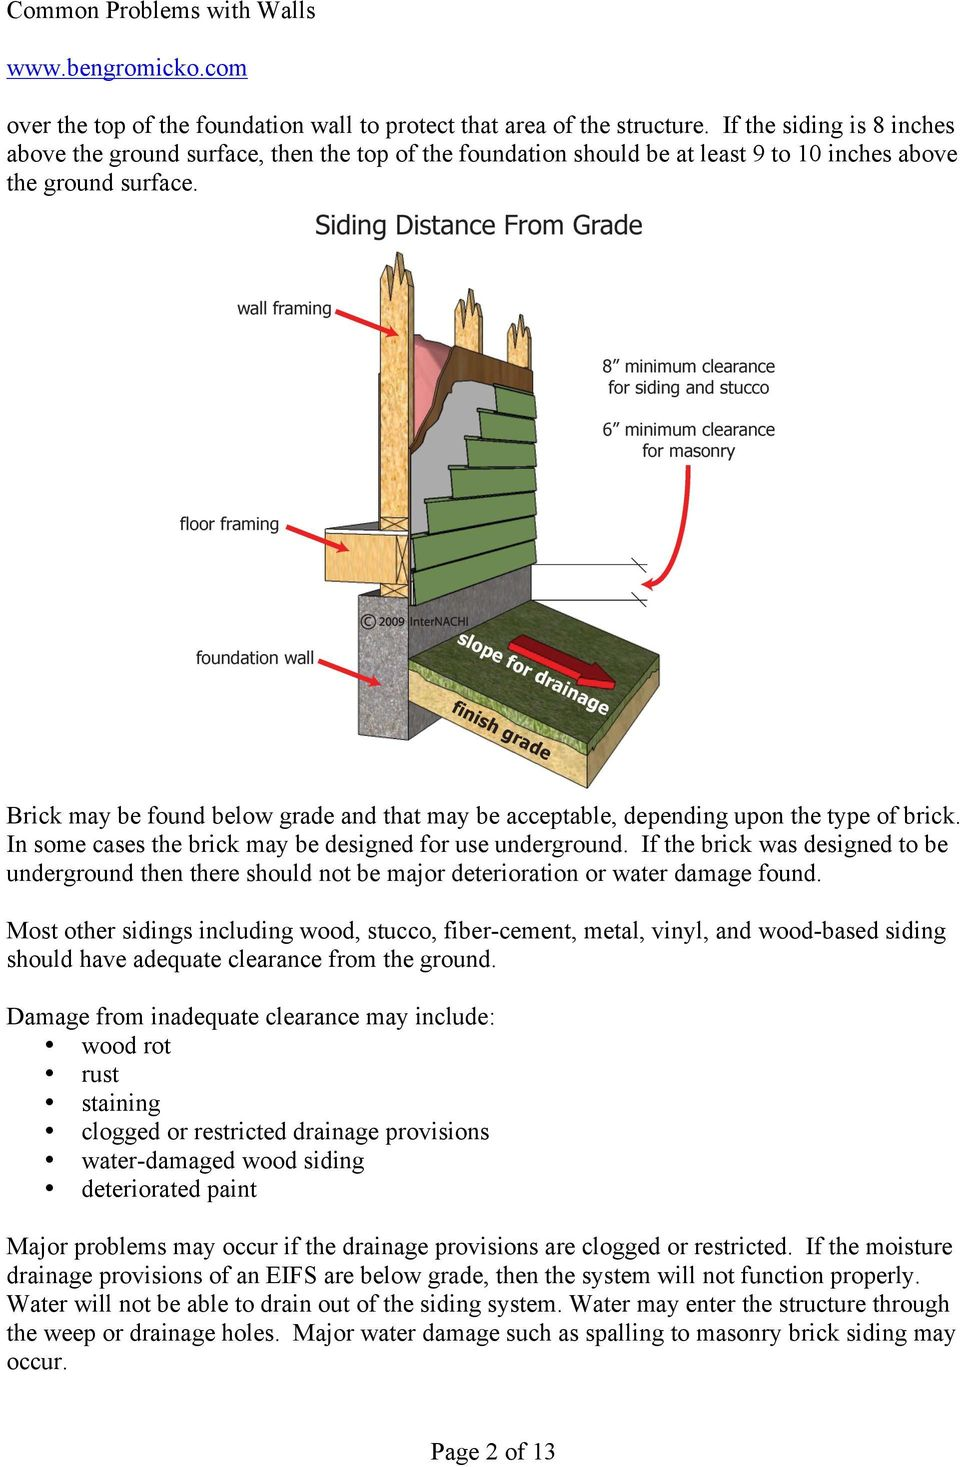 Brick may be found below grade and that may be acceptable, depending upon the type of brick. In some cases the brick may be designed for use underground.